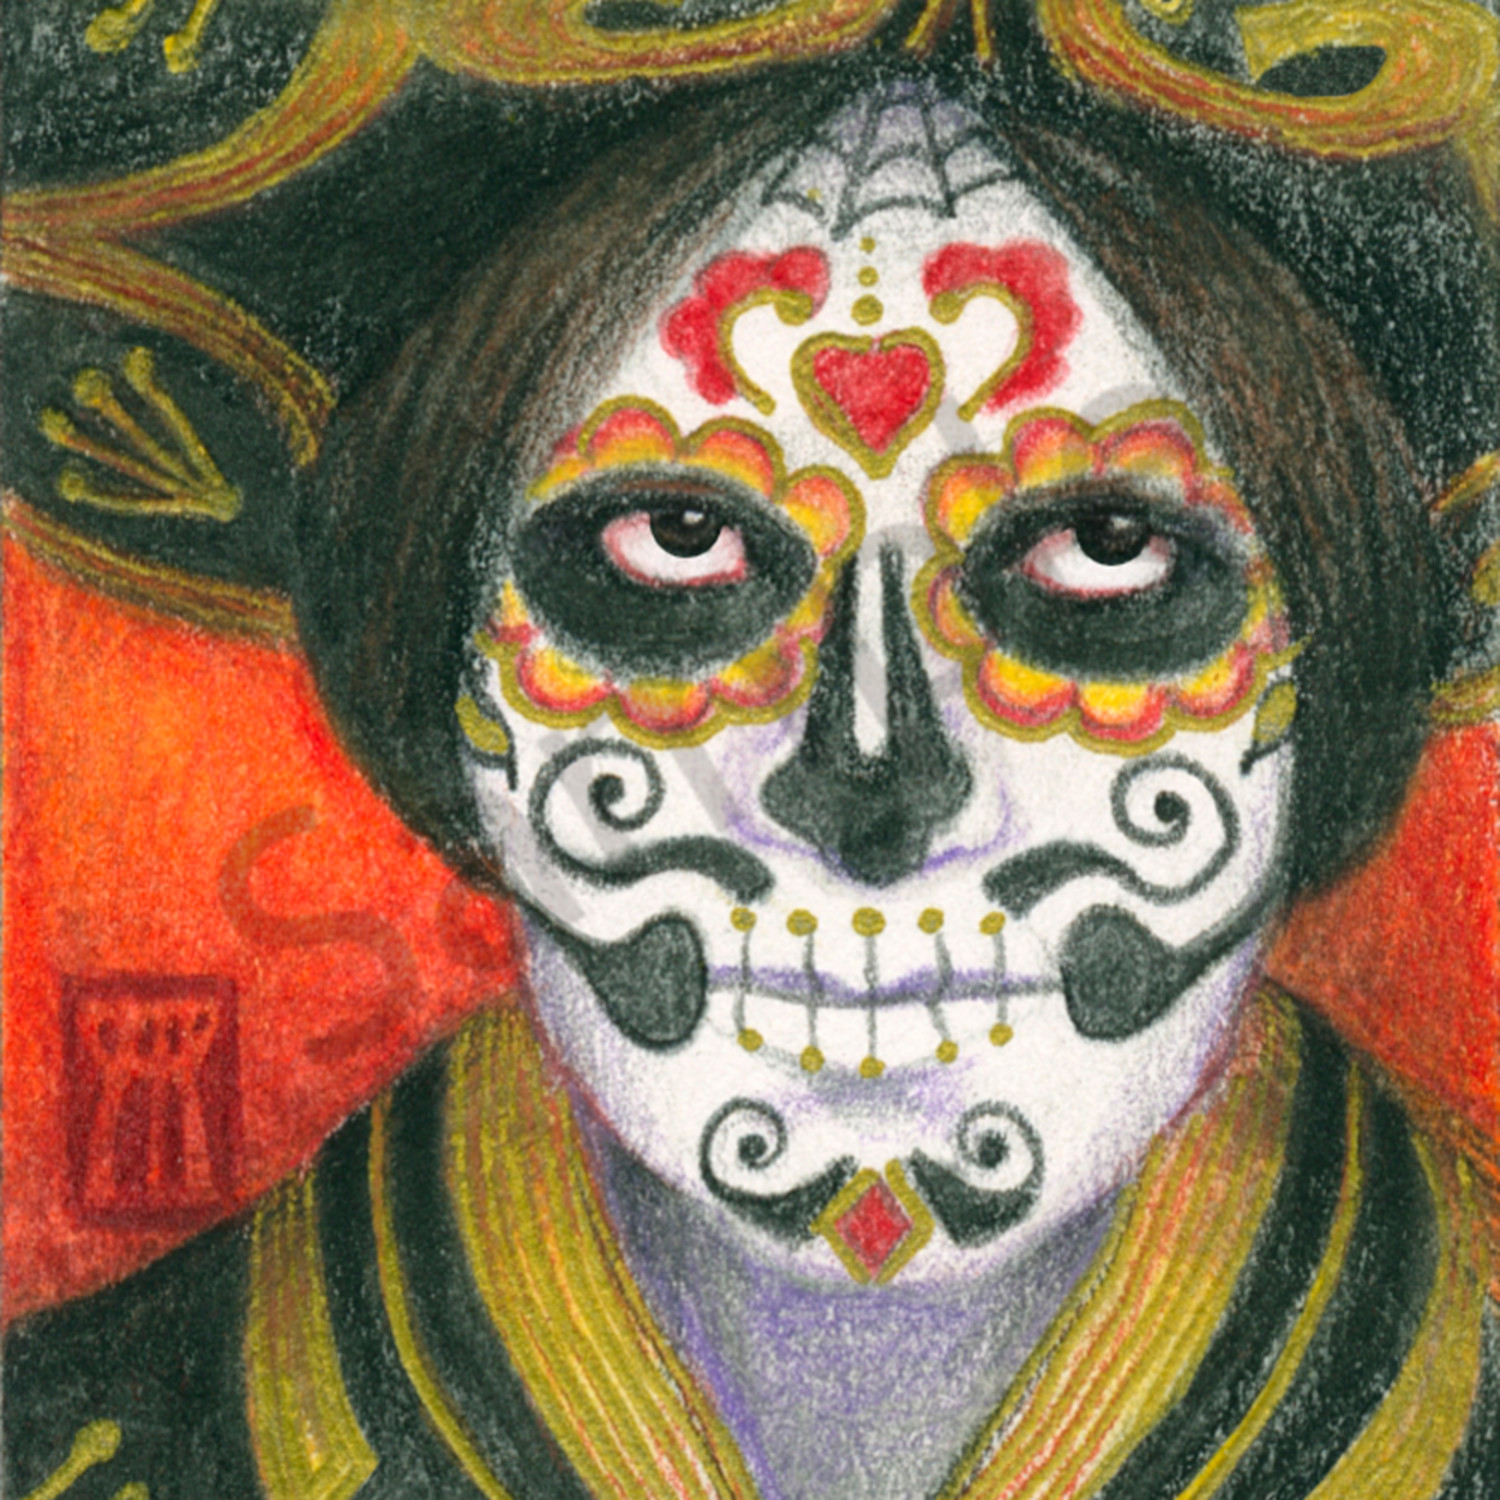 Day of the dead sombrero 1500 x 2100 fxbngu